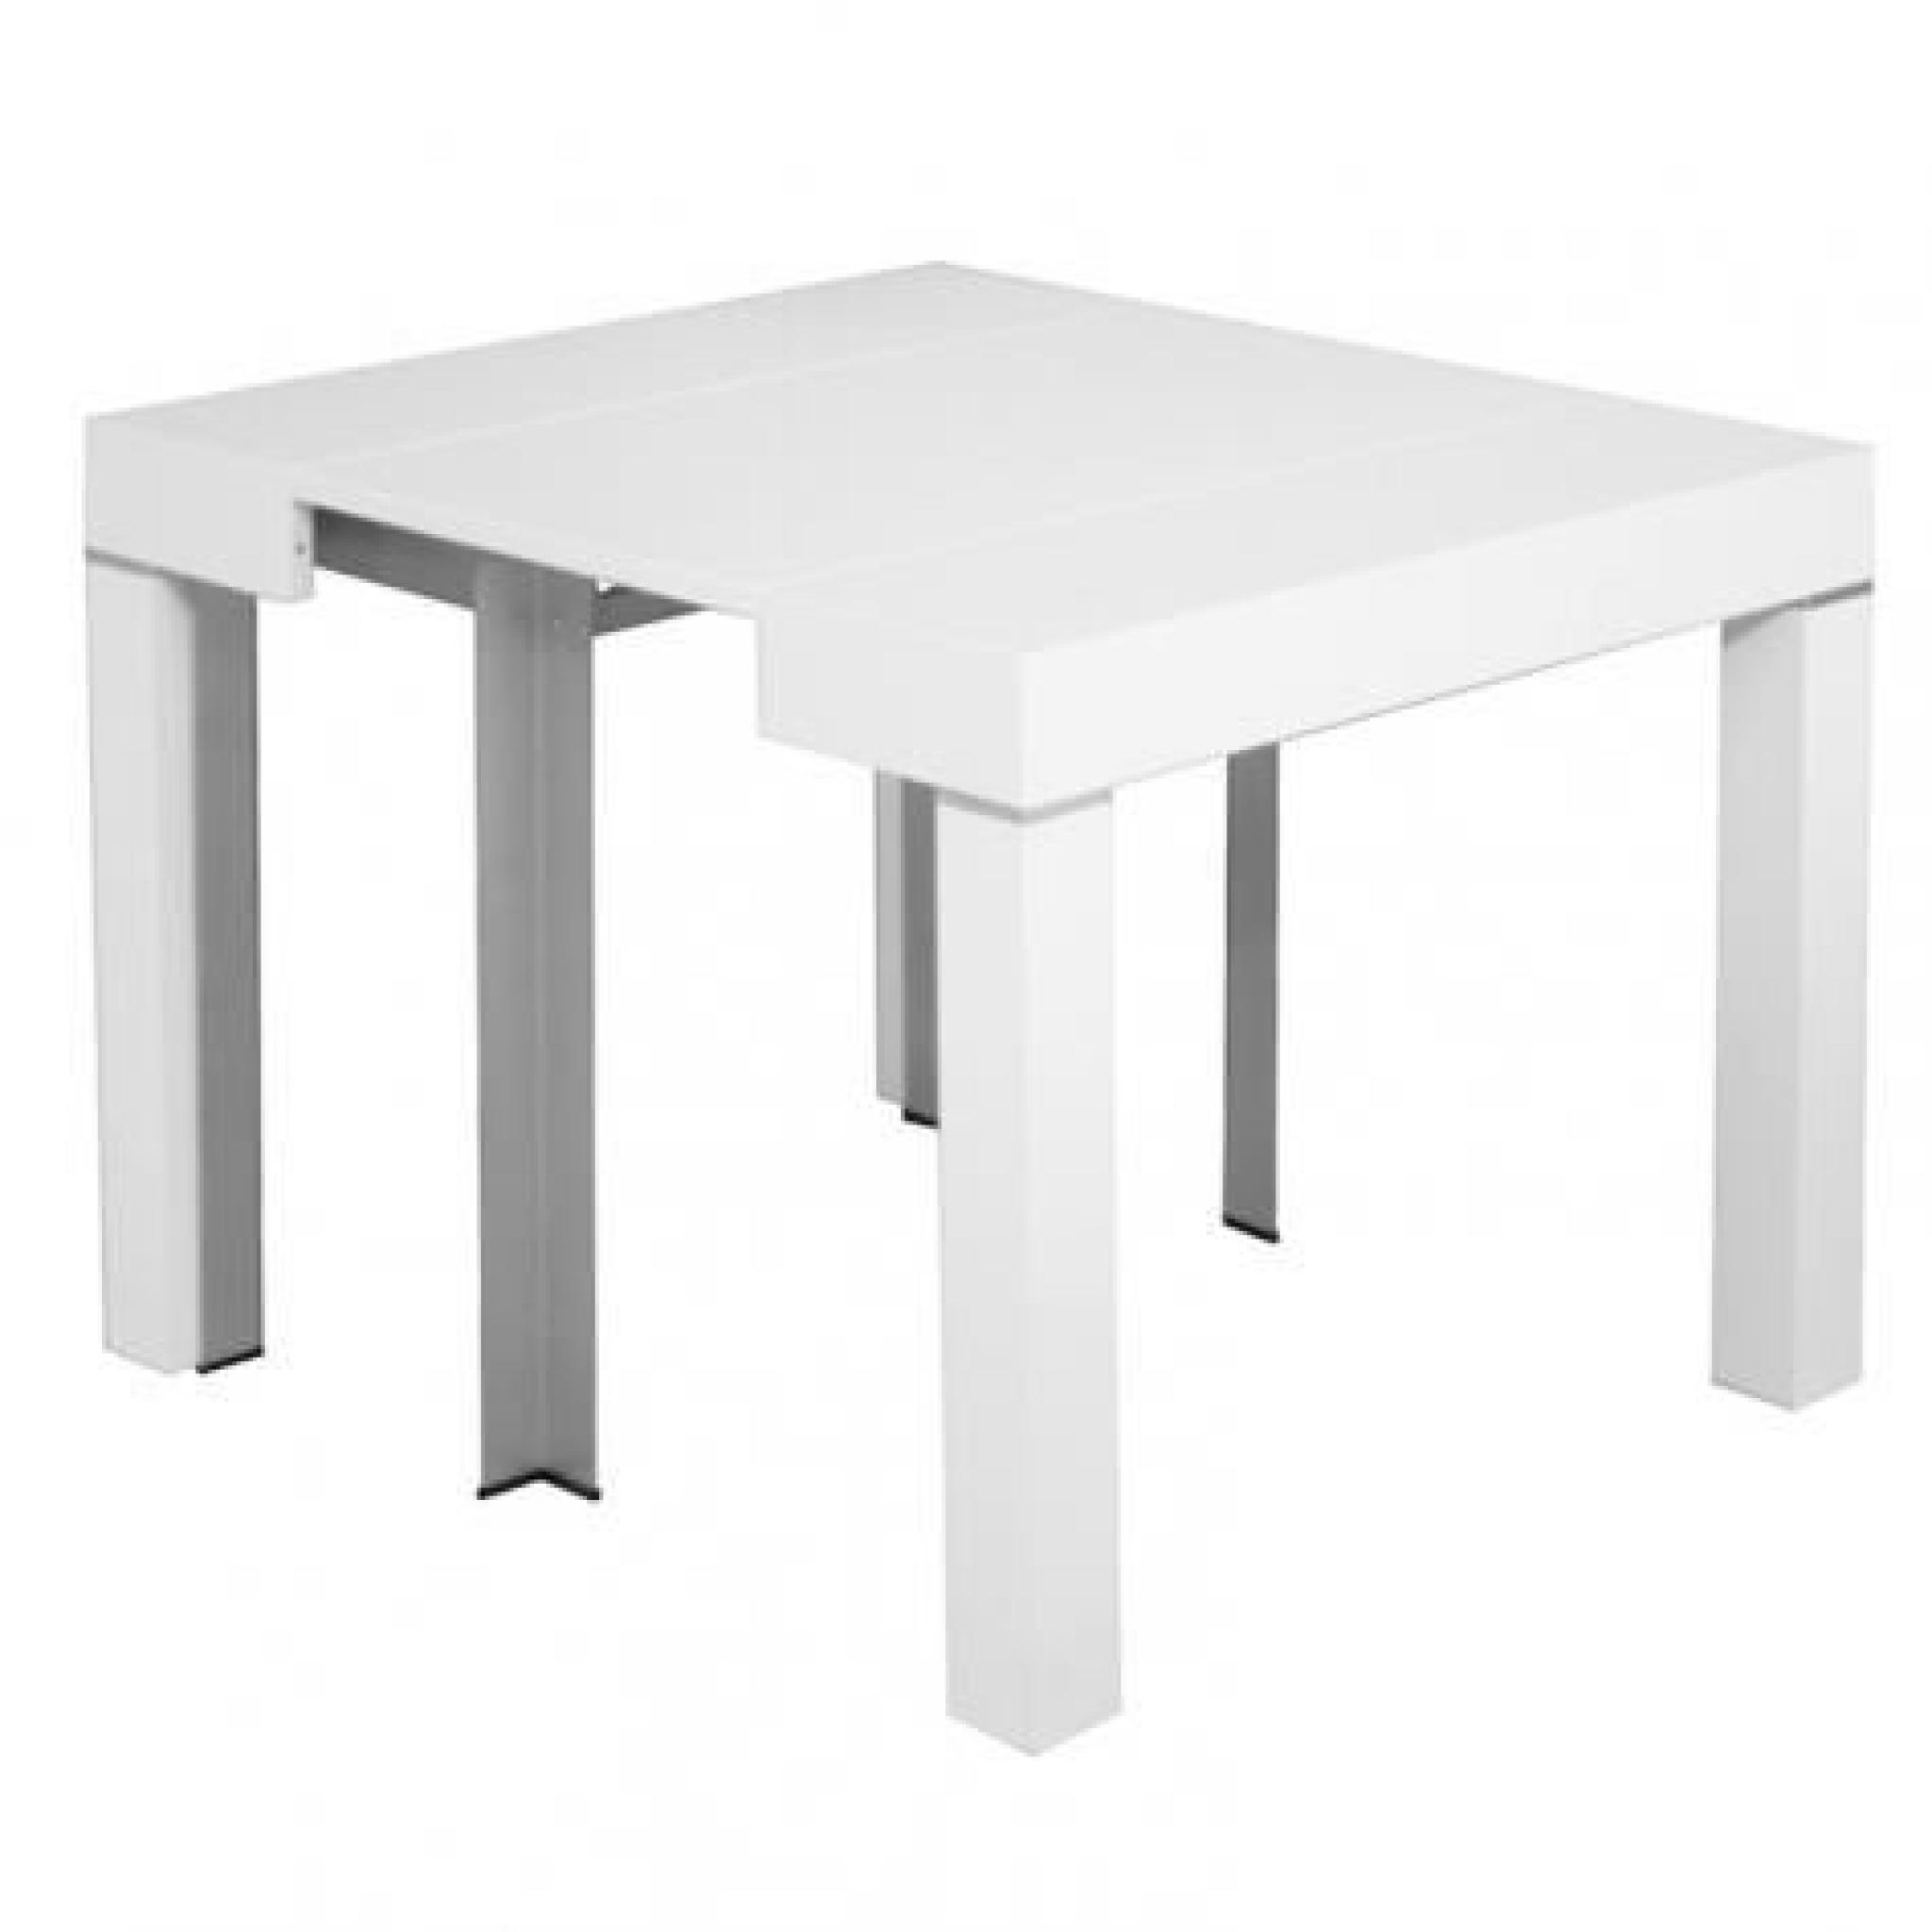 Table console extensible blanche laqu e 4 rallonges alesia for Table salle a manger console extensible